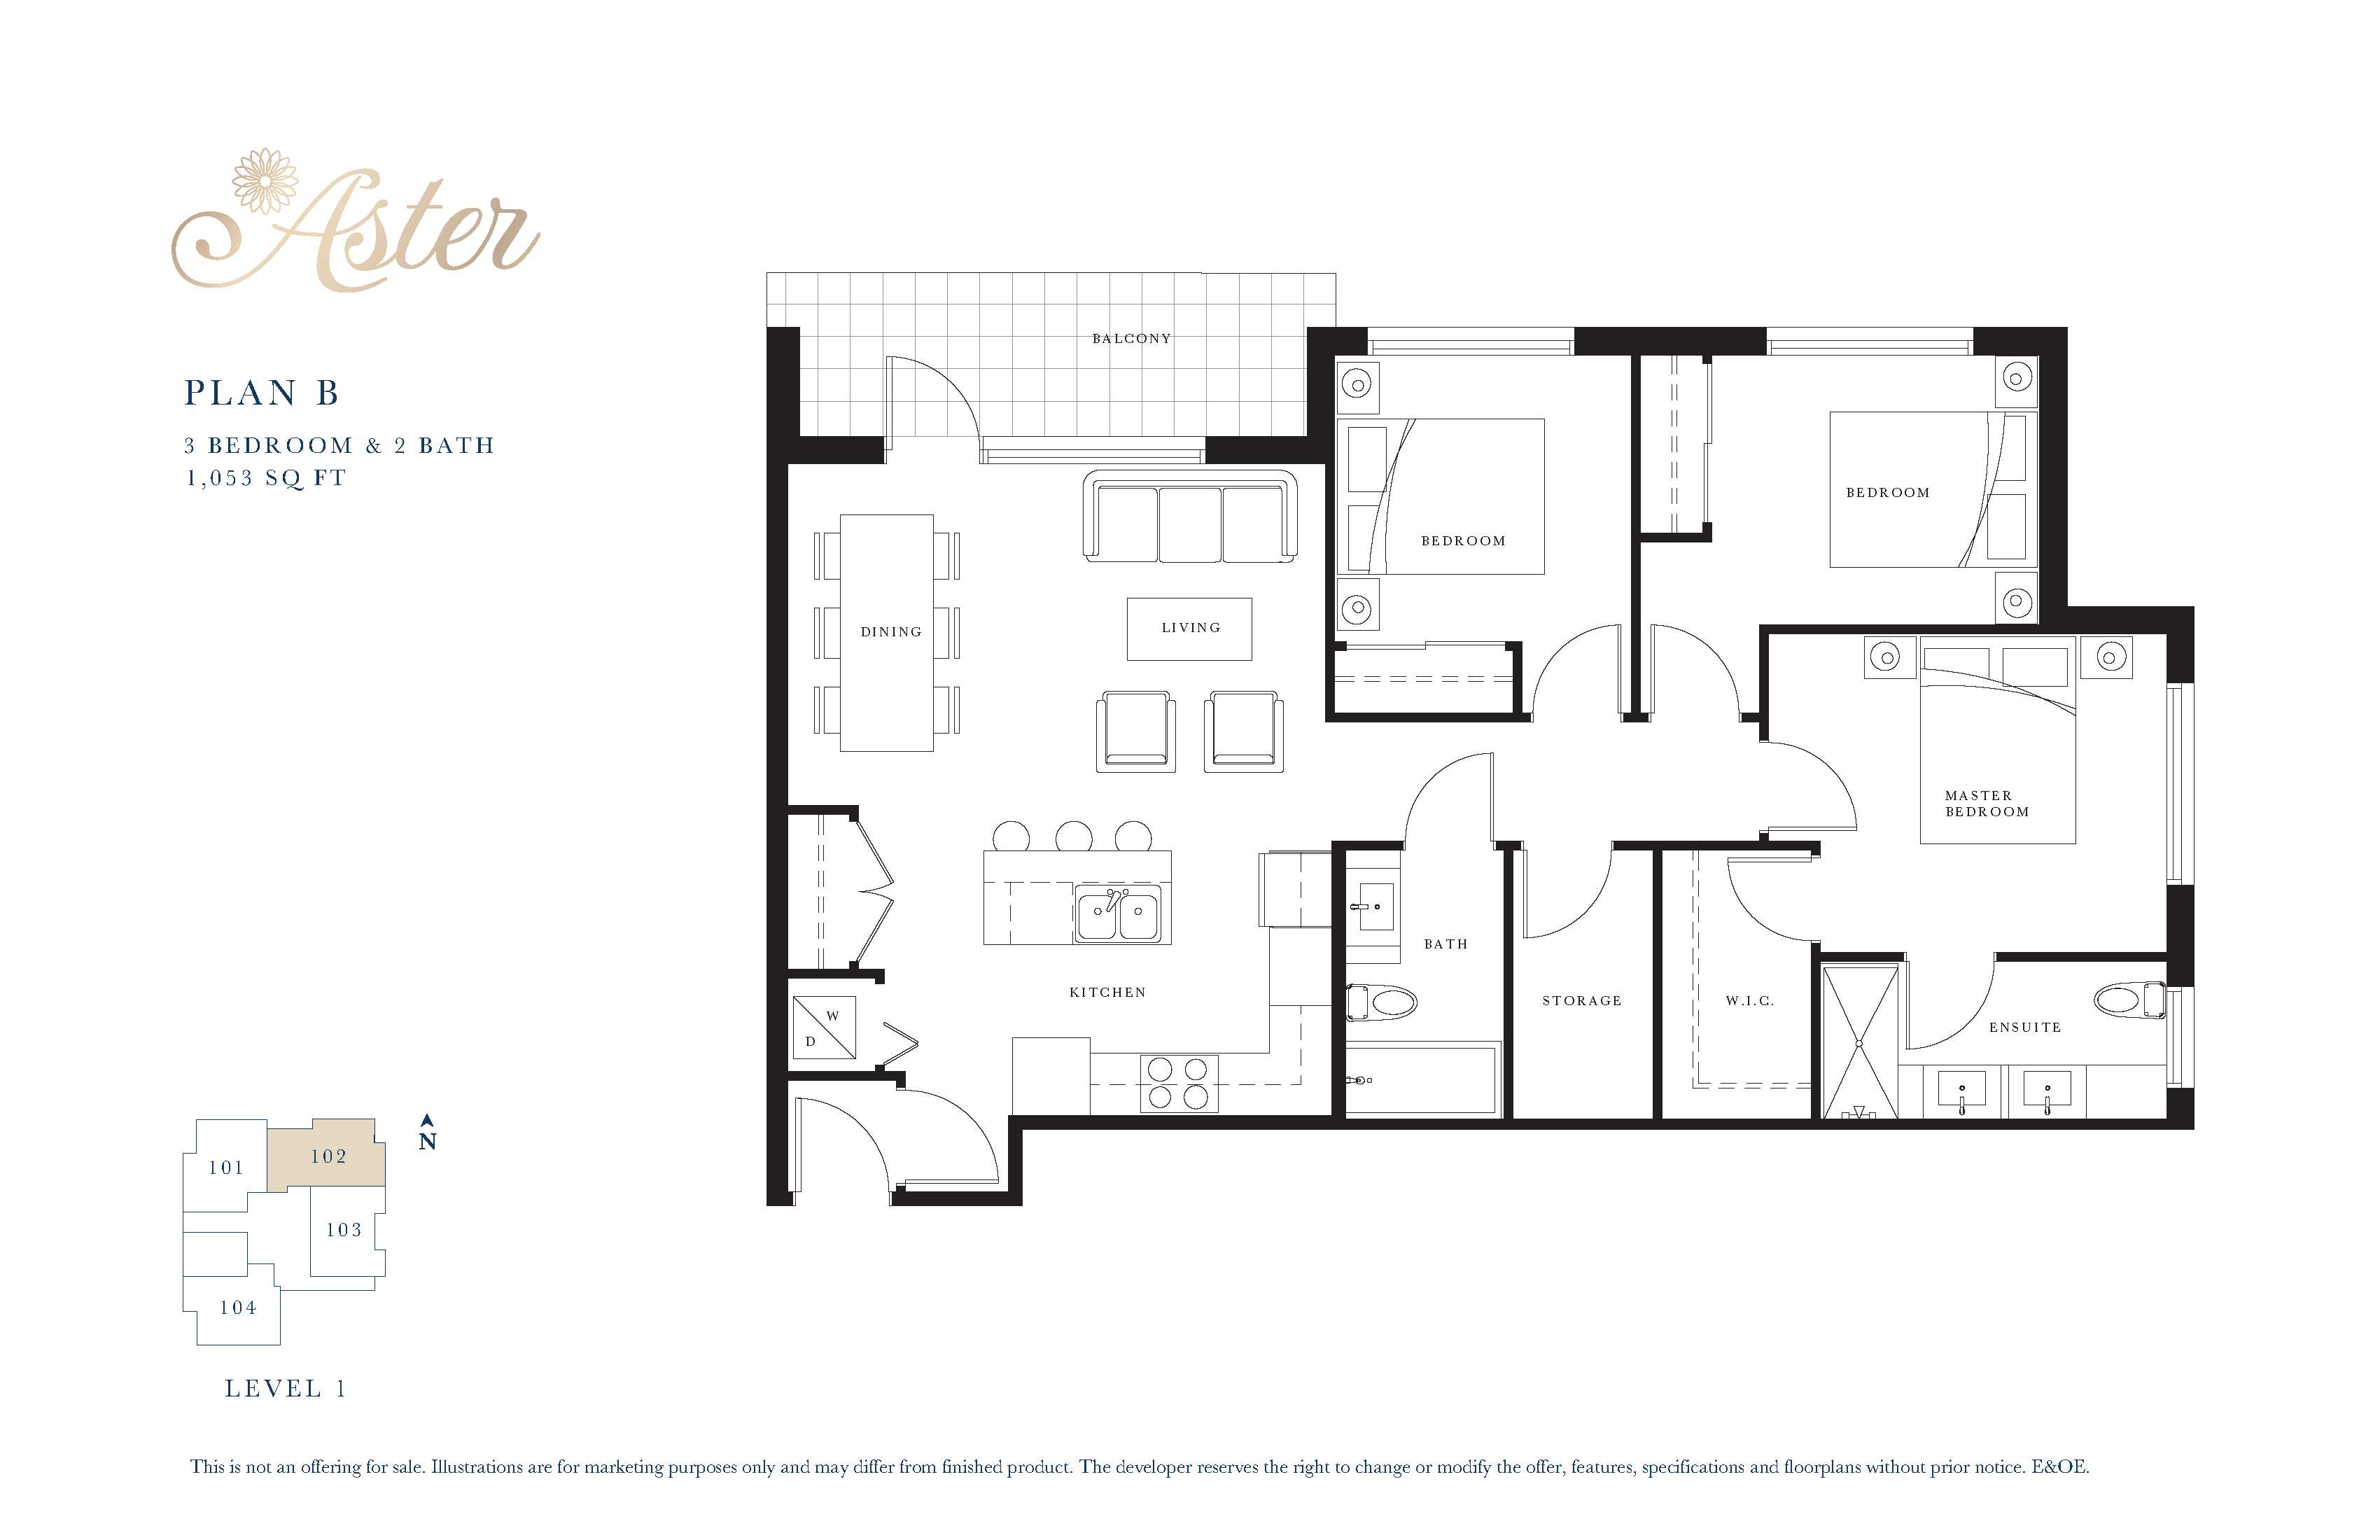 Plan B 3 BED & 2 BATH 1053 SQFT